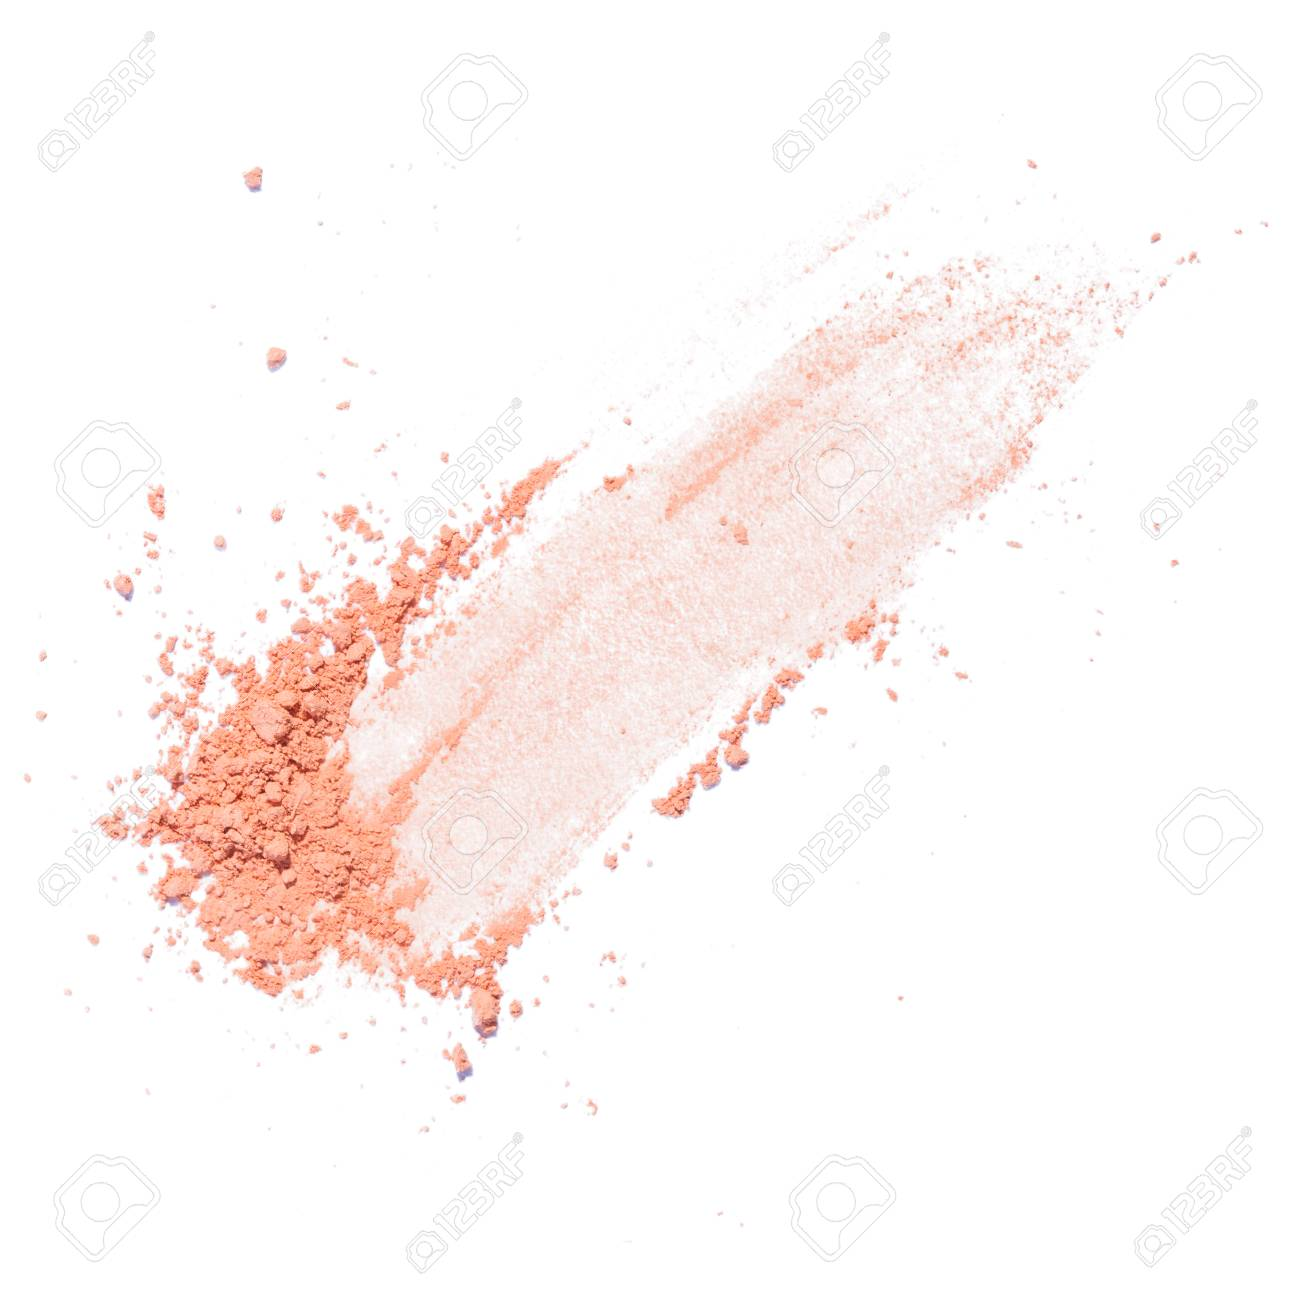 Cosmetic powder beige color crushed blush palette isolated on white - 105338136